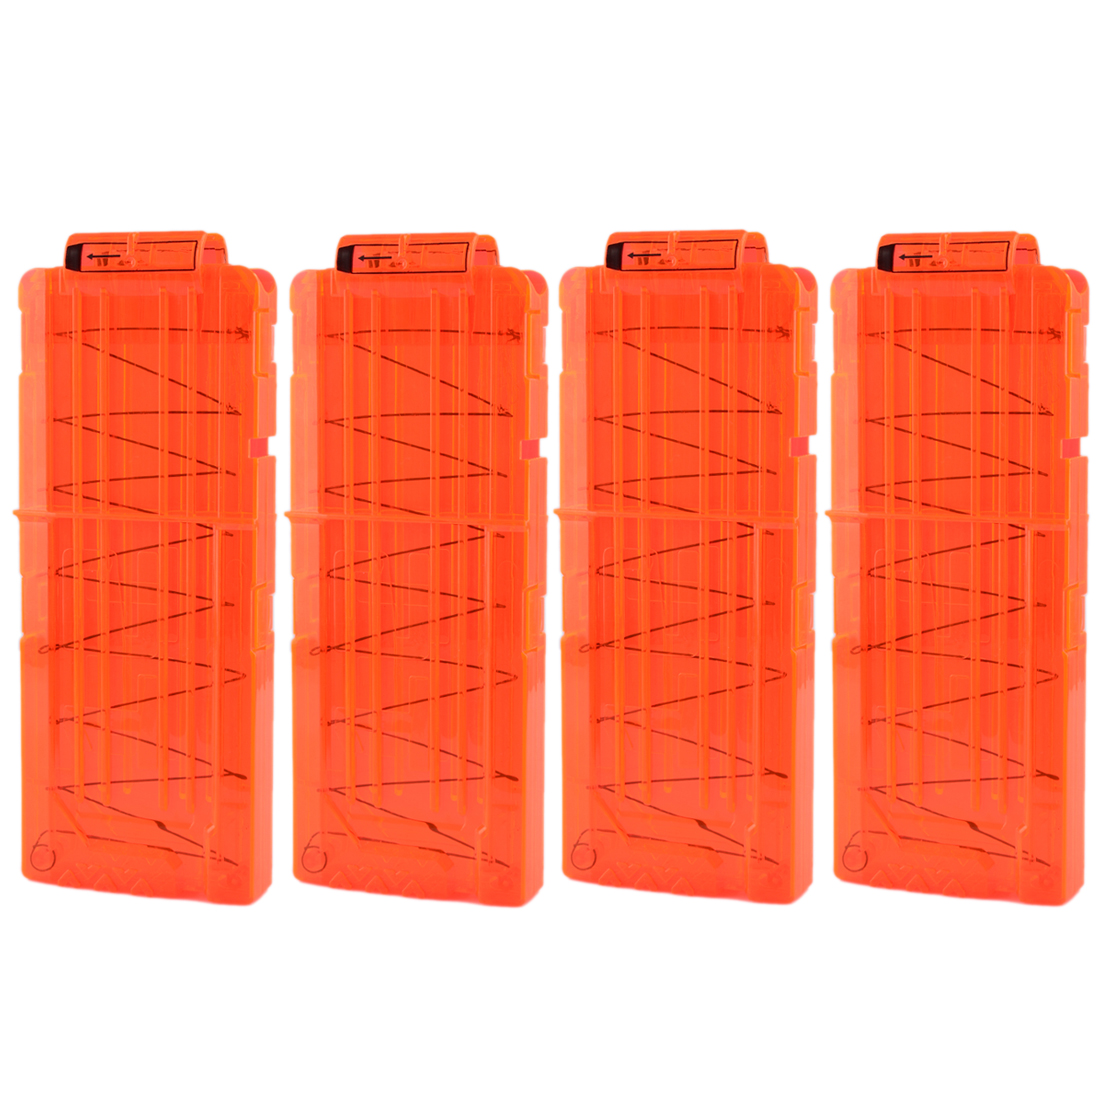 4Pcs Soft Bullet Clips For Nerf N-strike Elite Series 12 Bullets Ammo Cartridge Dart For Nerf Bullet Clips - Orange